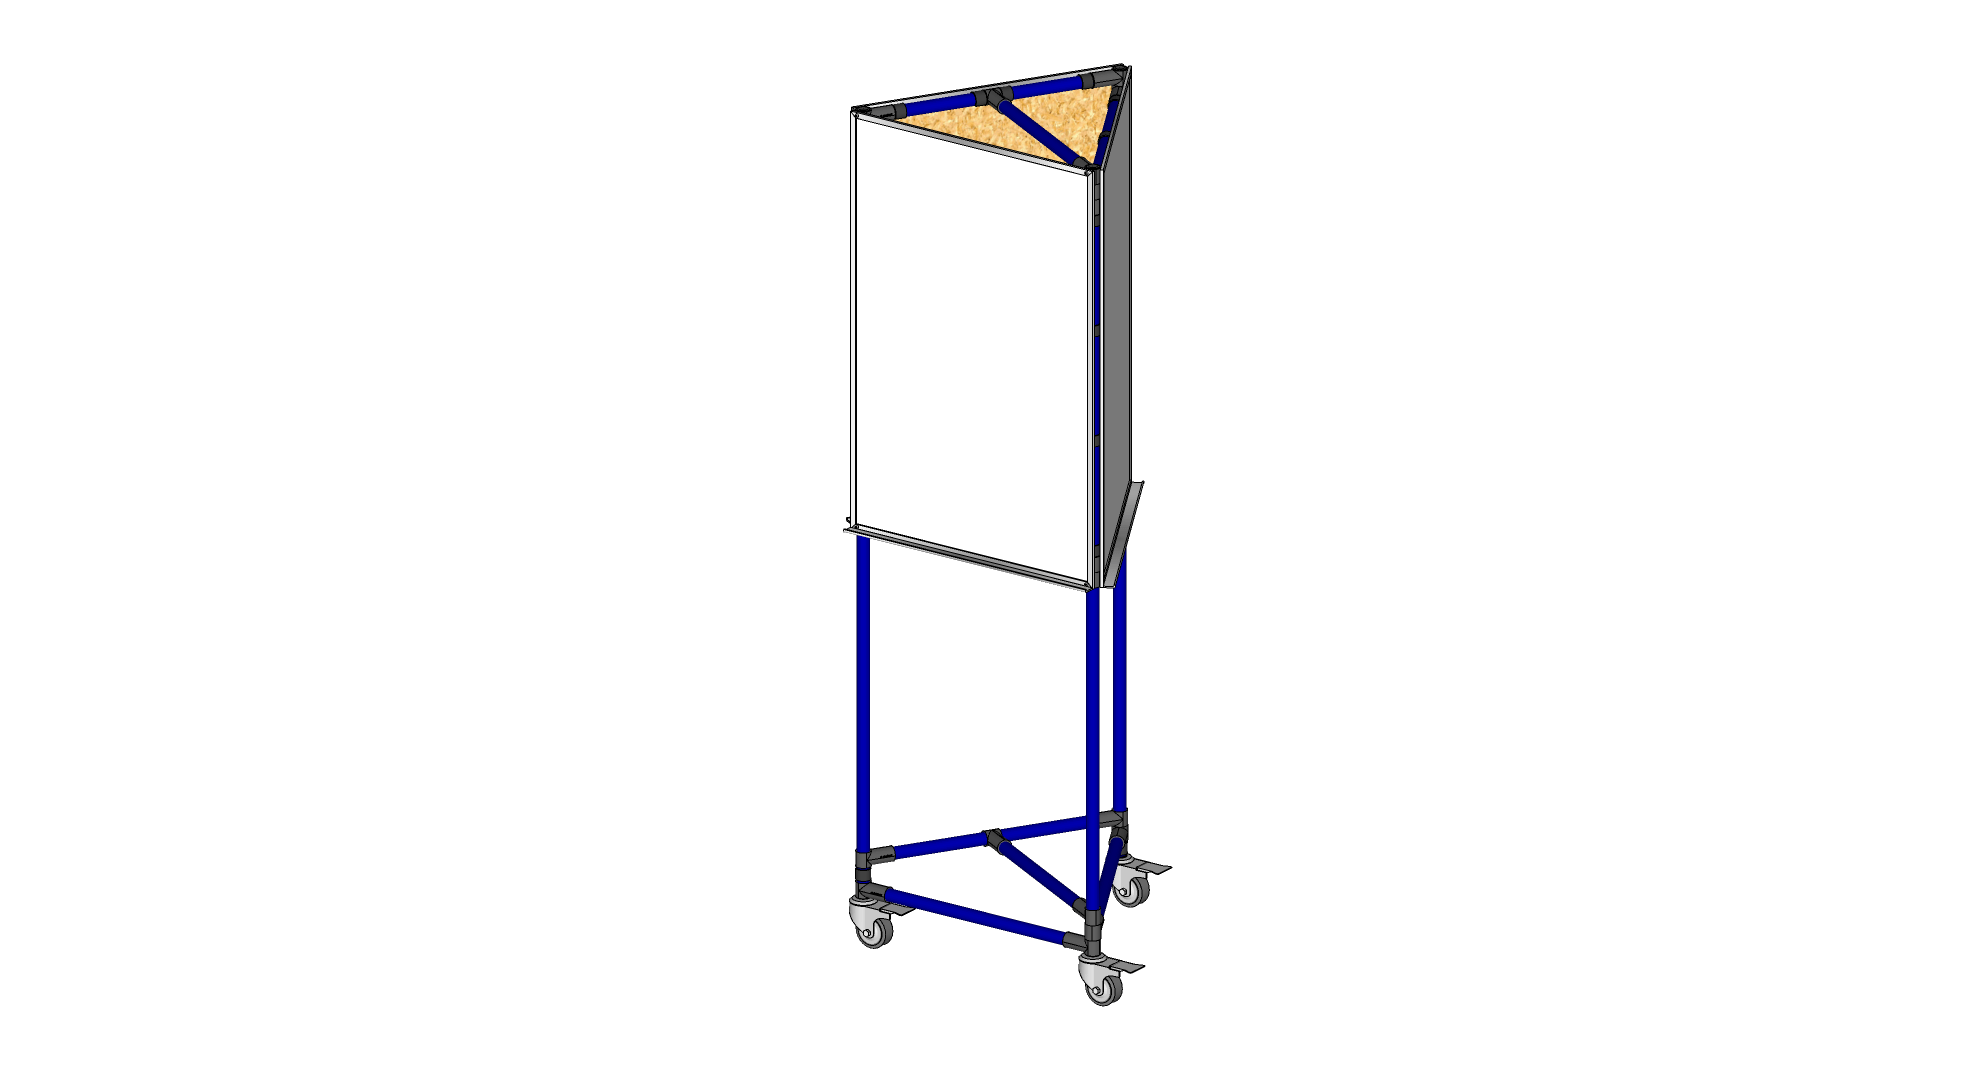 3 Sided 2' x 3' Whiteboard